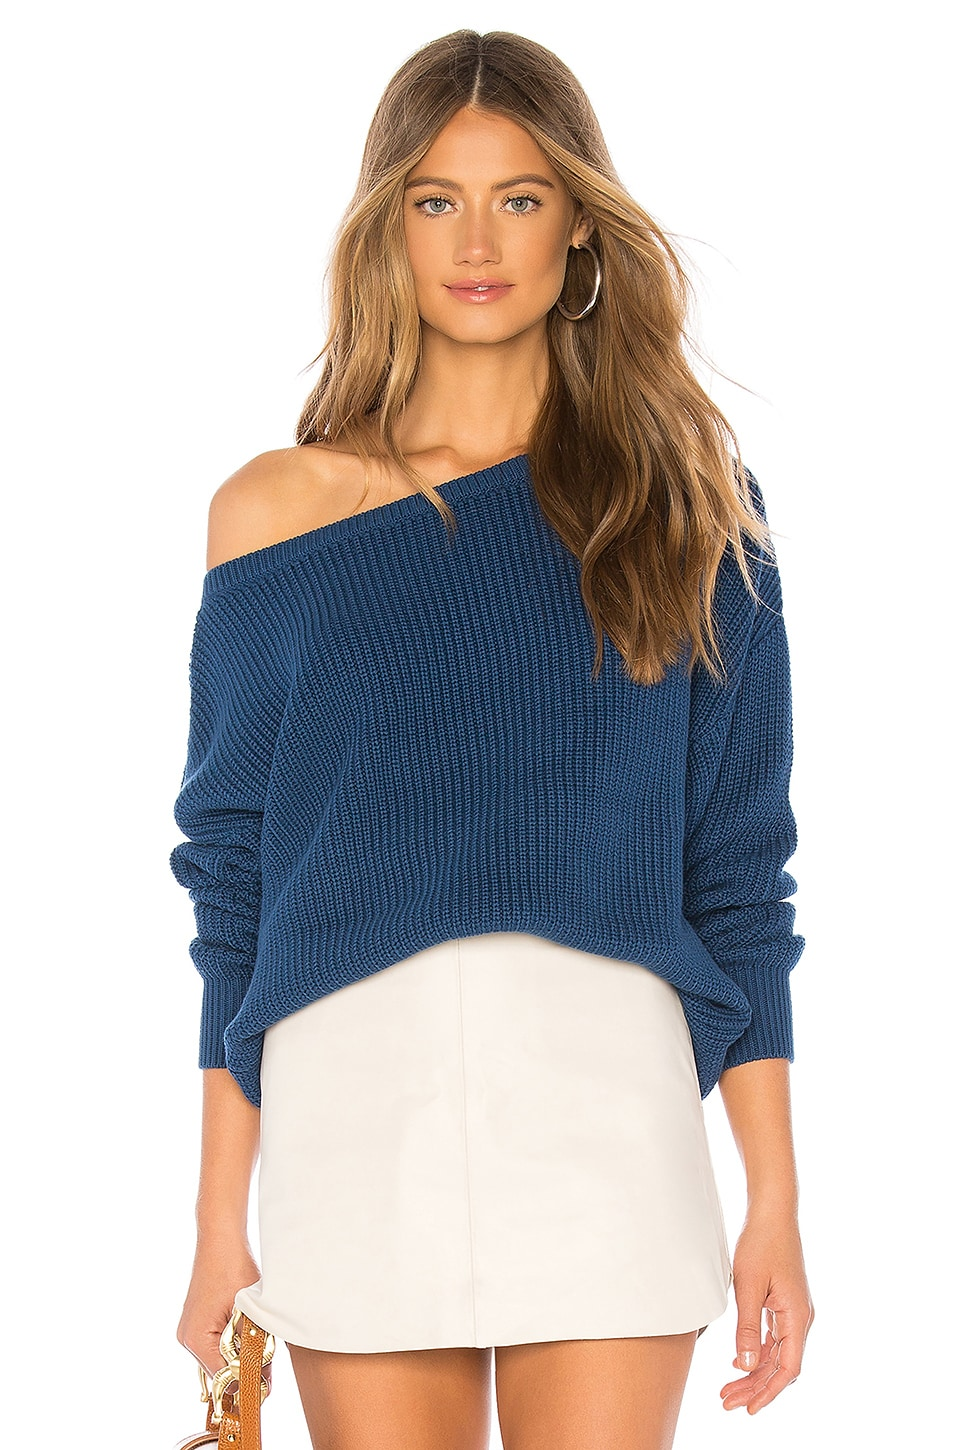 CALLAHAN Jonna Sweater in Navy